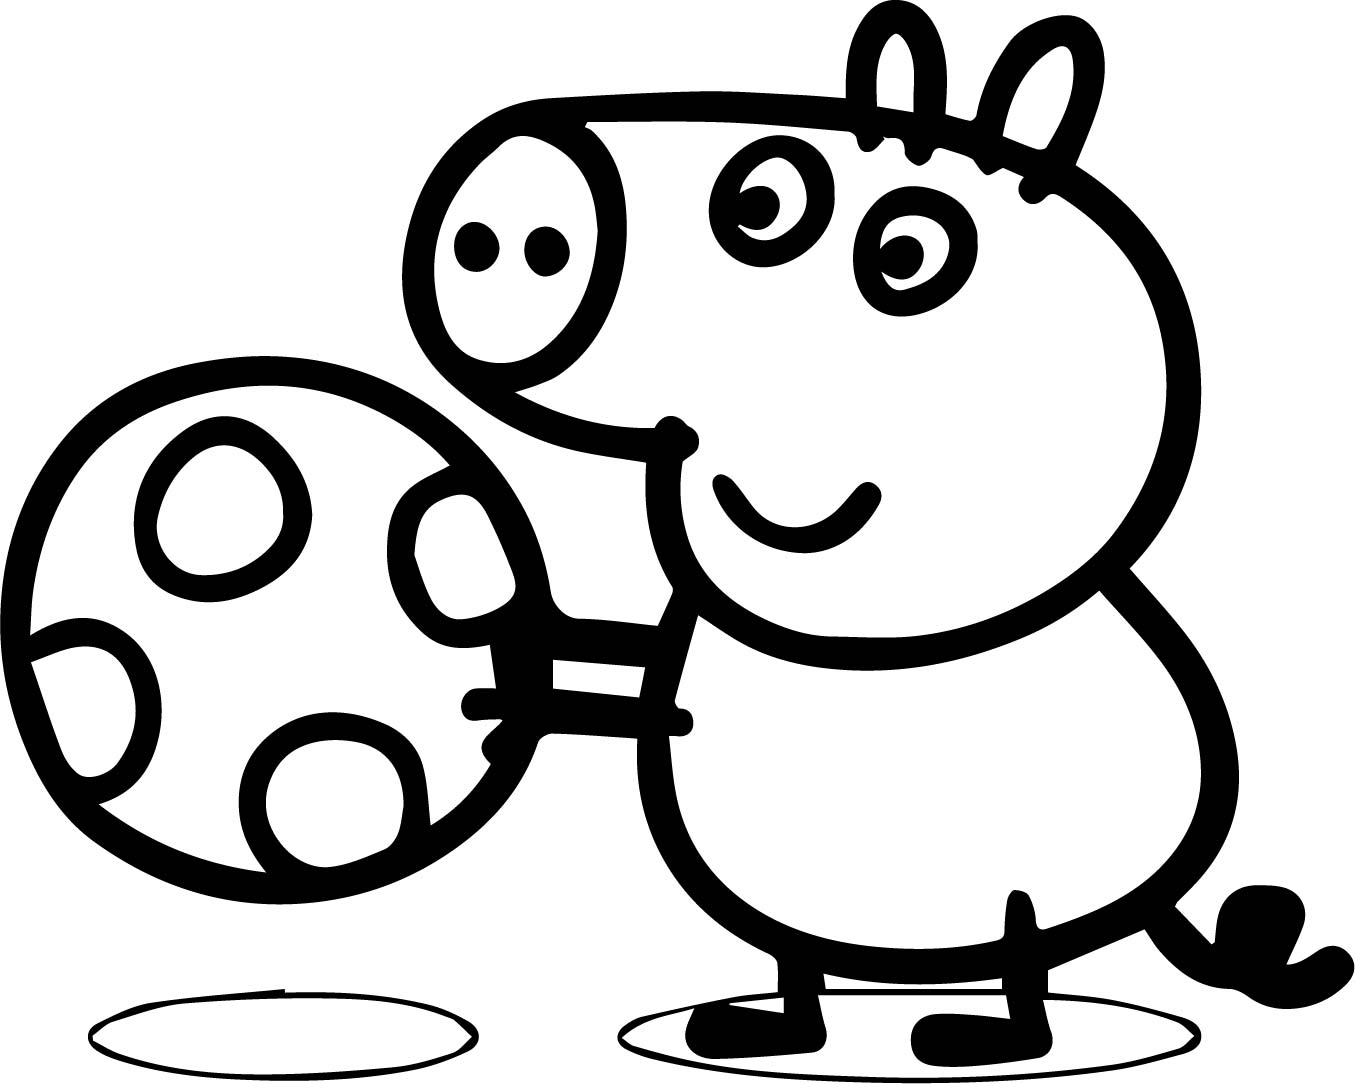 Just Peppa Pig Easter Egg Coloring Page | Wecoloringpage.com